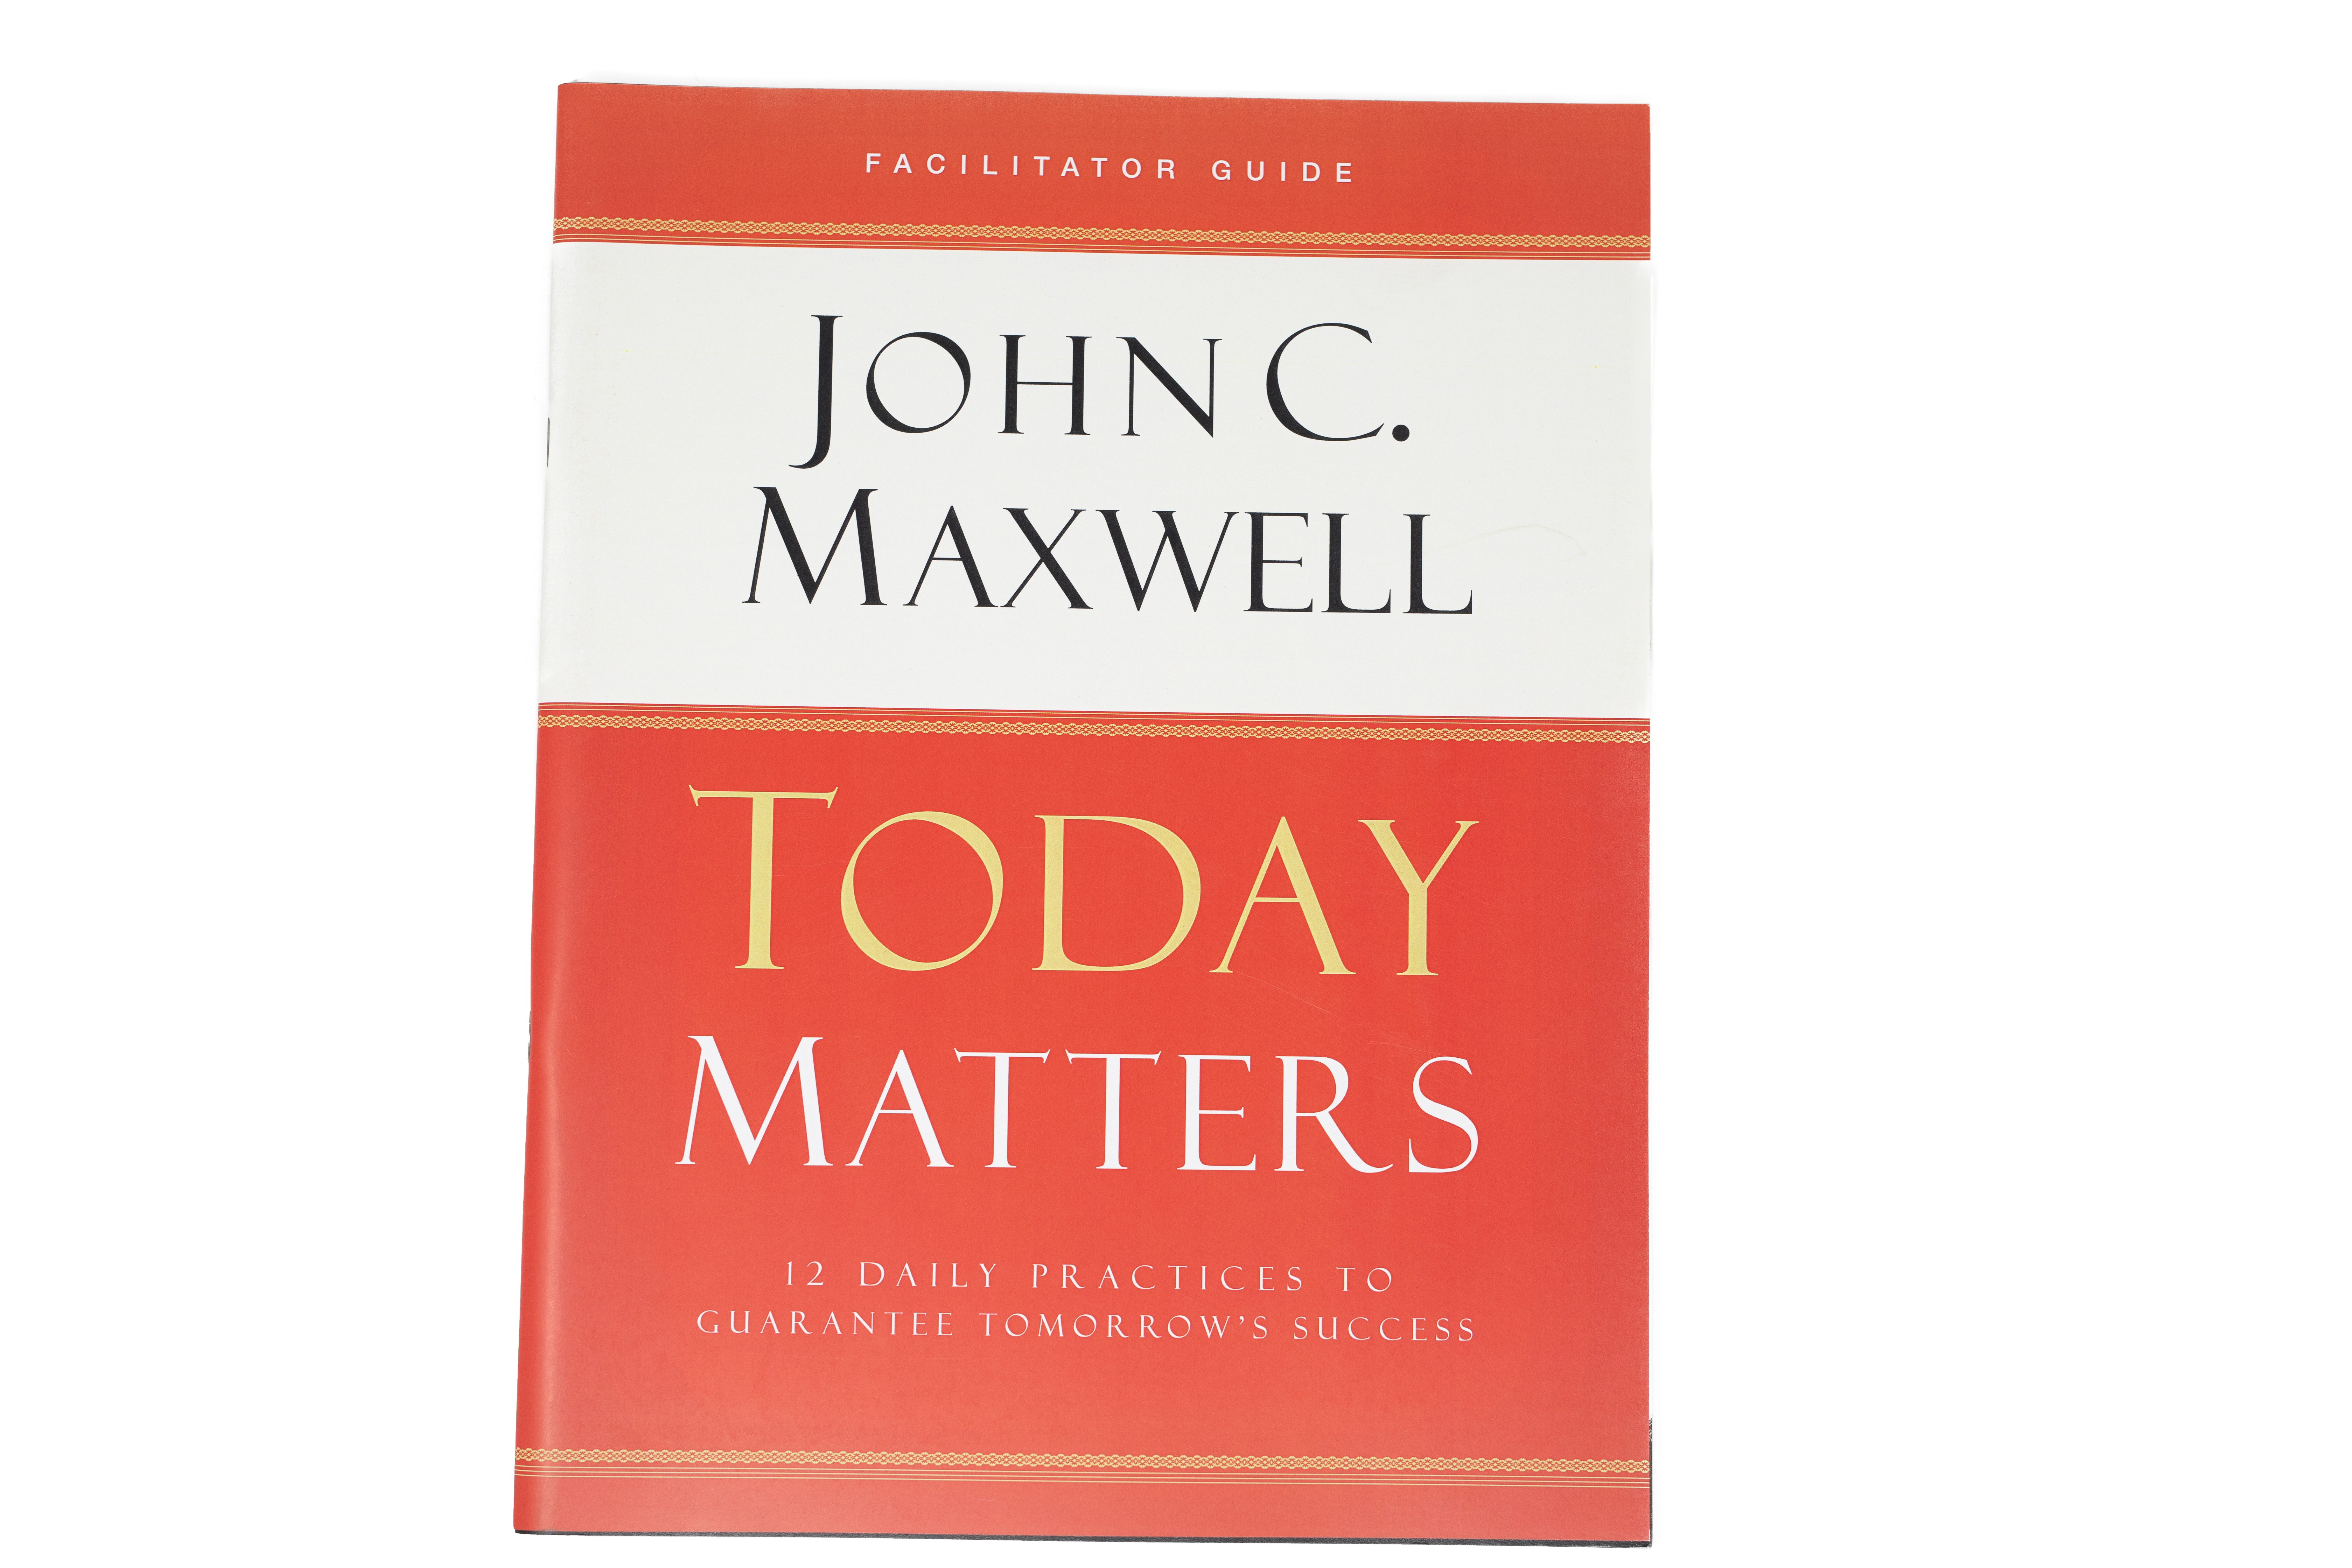 Today Matters Facilitator Guide